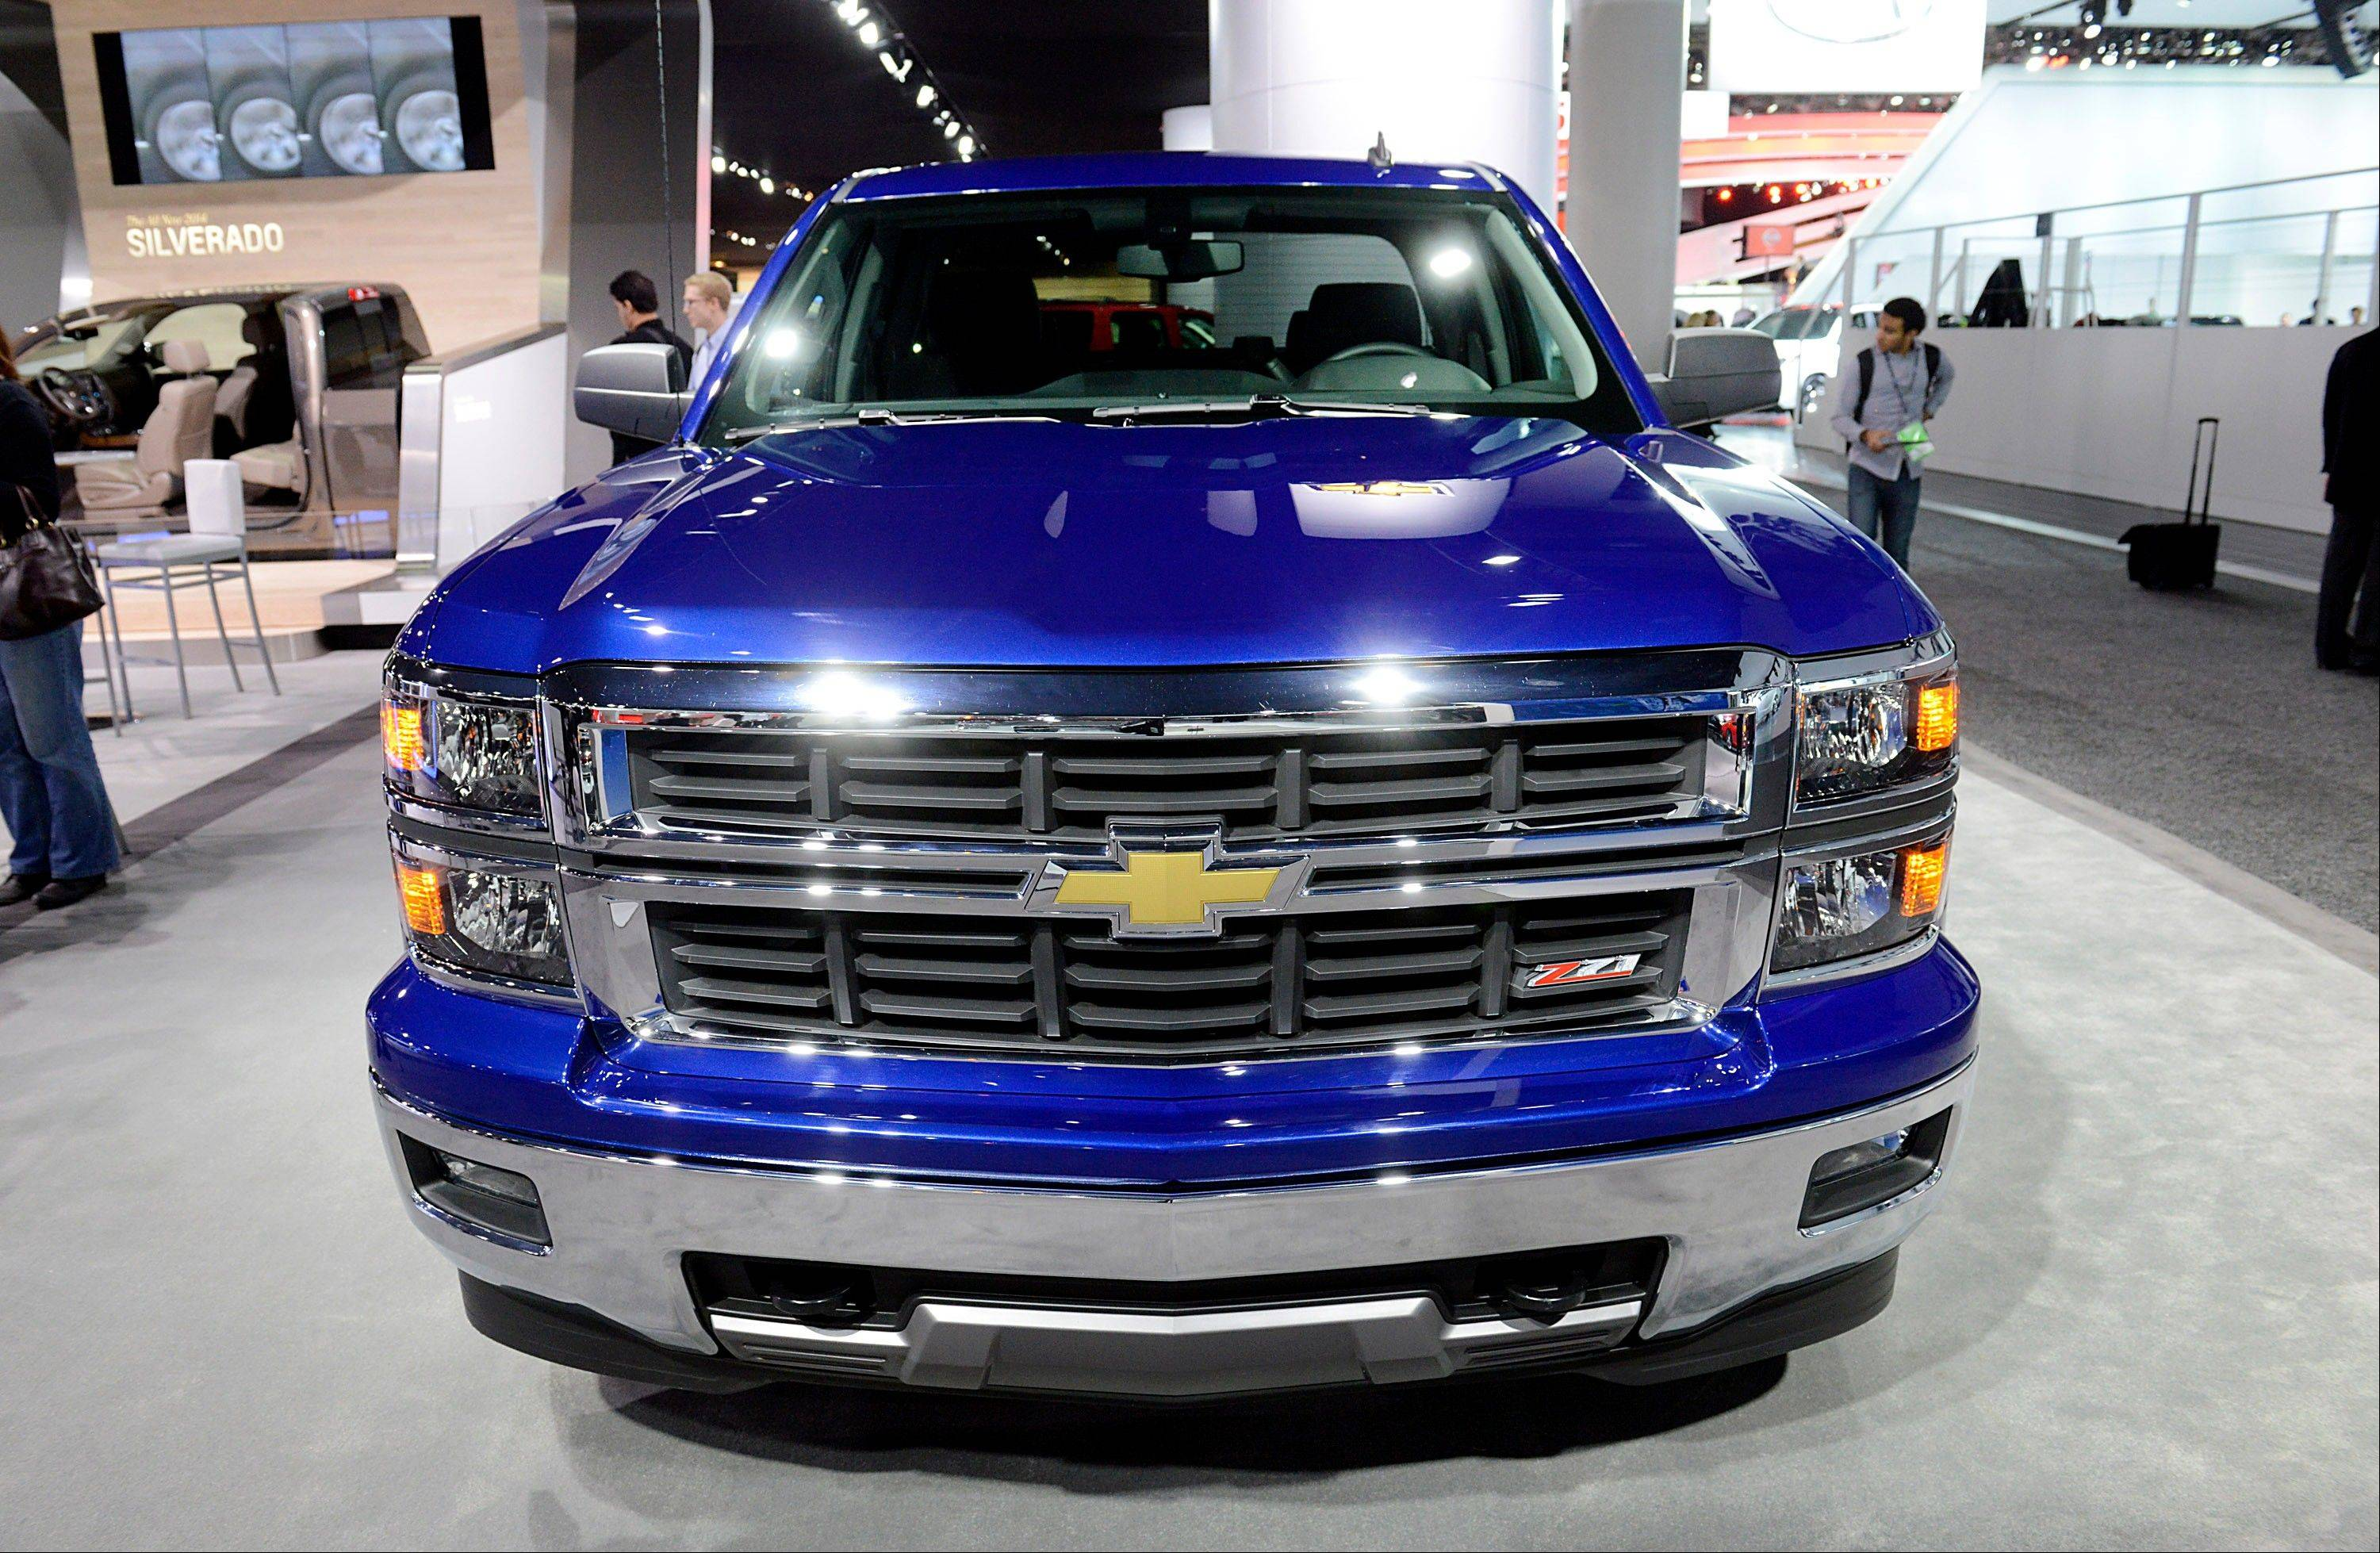 The 2014 Chevrolet Silverado truck is displayed during the 2013 North American International Auto Show (NAIAS) in Detroit, Michigan, U.S., on Tuesday, Jan. 15, 2013. The Detroit auto show runs through Jan. 27 and will display over 500 vehicles, representing the most innovative designs in the world.